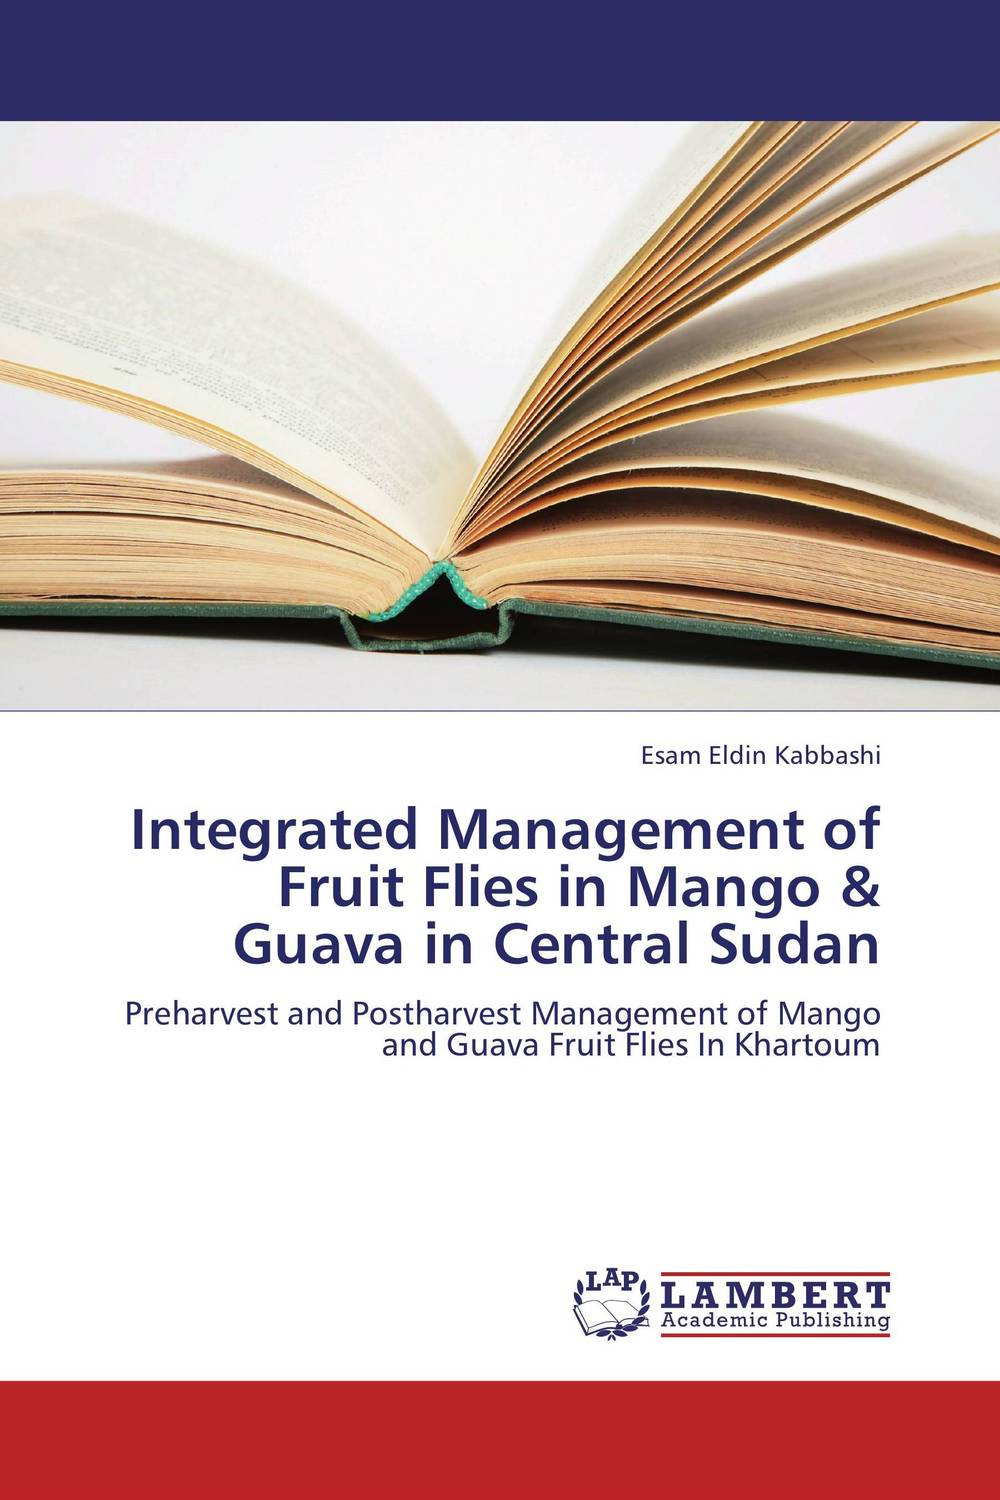 Integrated Management of Fruit Flies in Mango & Guava in Central Sudan phlebotomine sand flies of central sudan